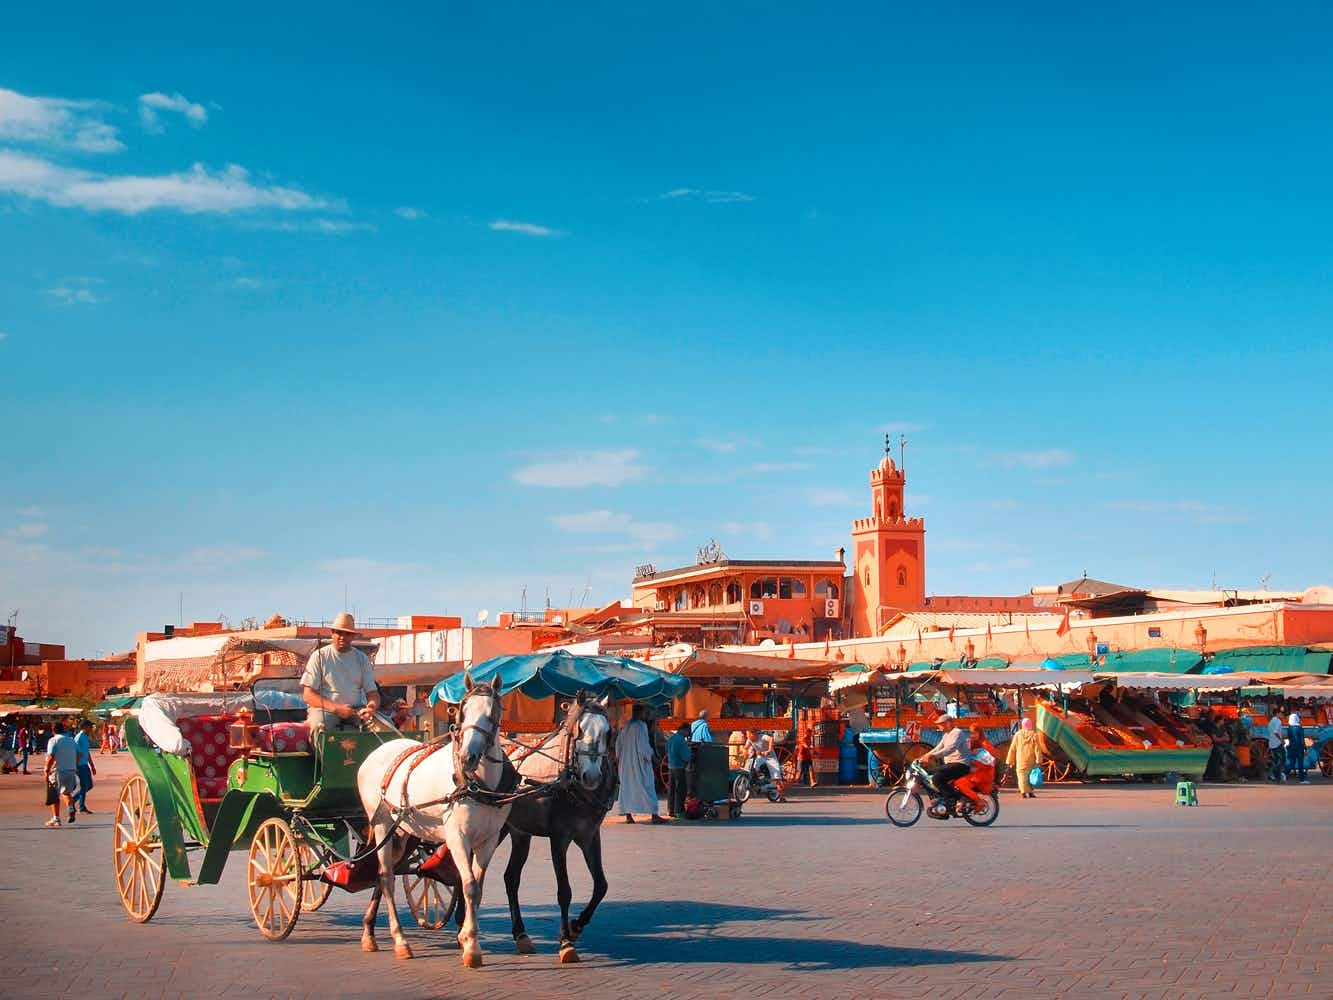 A horse and carriage drive through a sunny Djemaa el-Fna. Image by Alberto Manuel Urosa Toledano/Moment Editorial/Getty Images